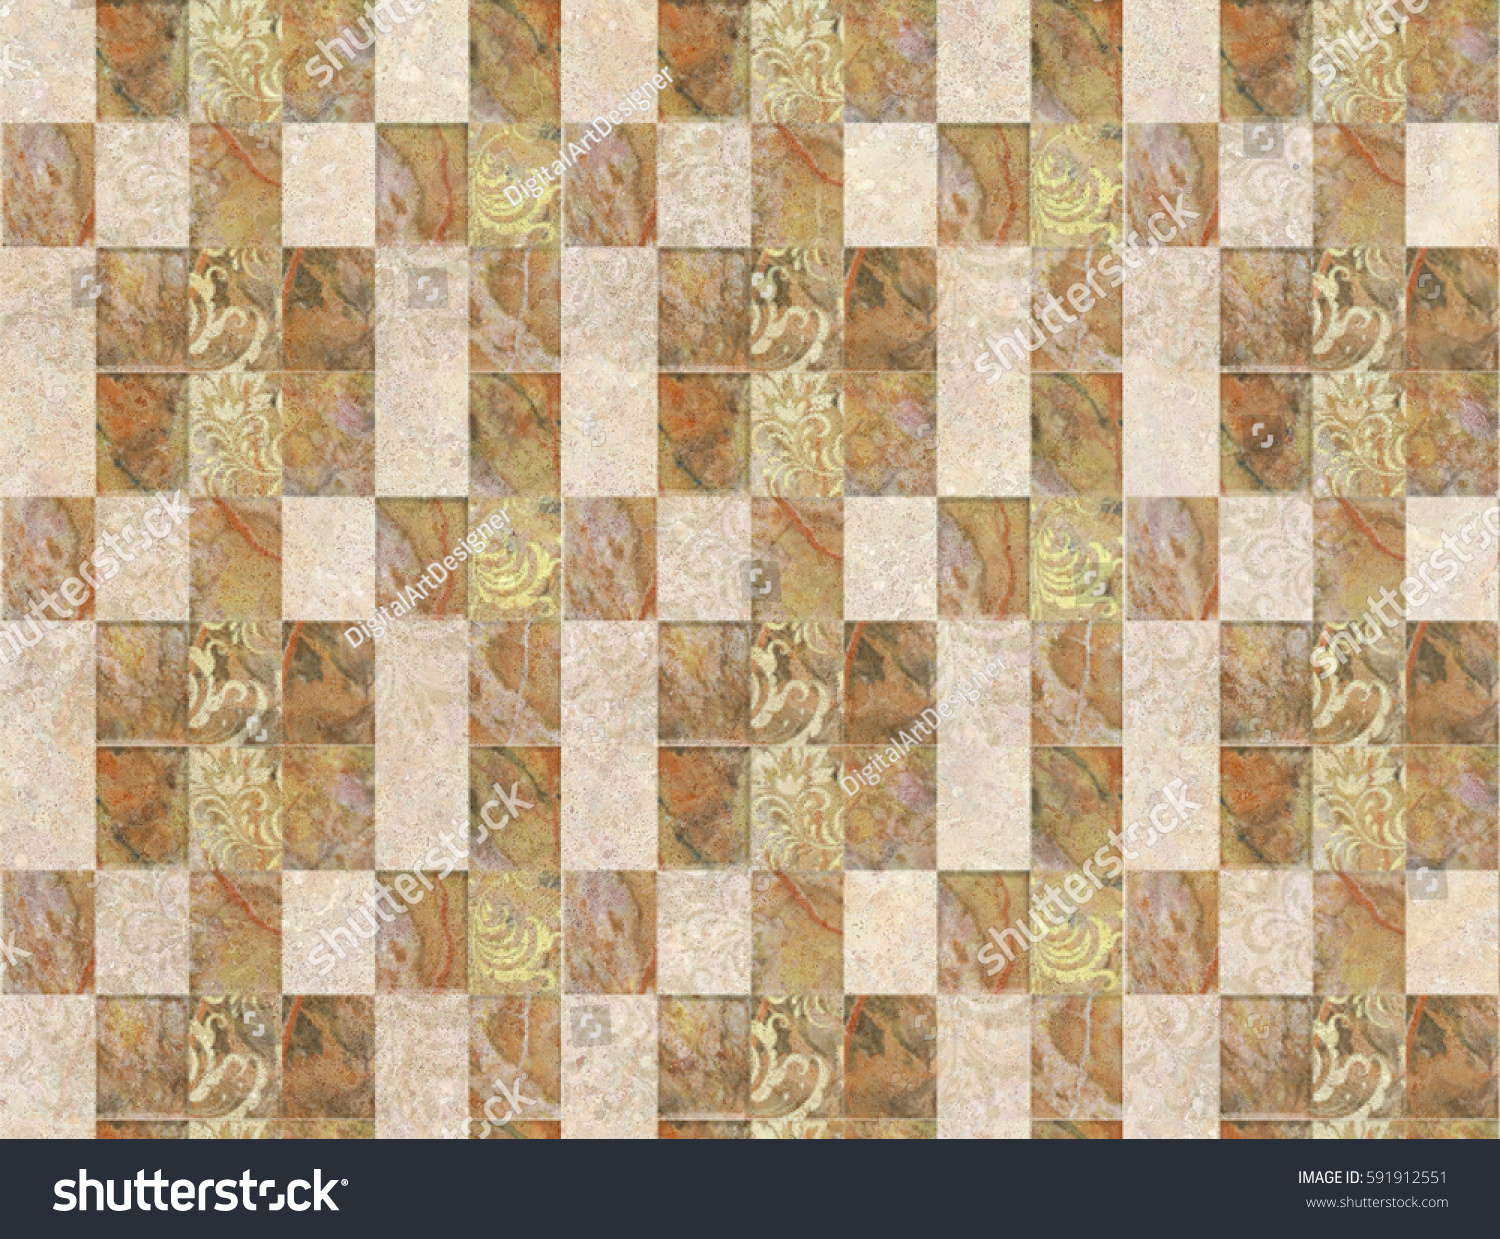 Colorful vintage ceramic tiles wall decorationdigital stock colorful vintage ceramic tiles wall decorationdigital tiles design dailygadgetfo Images